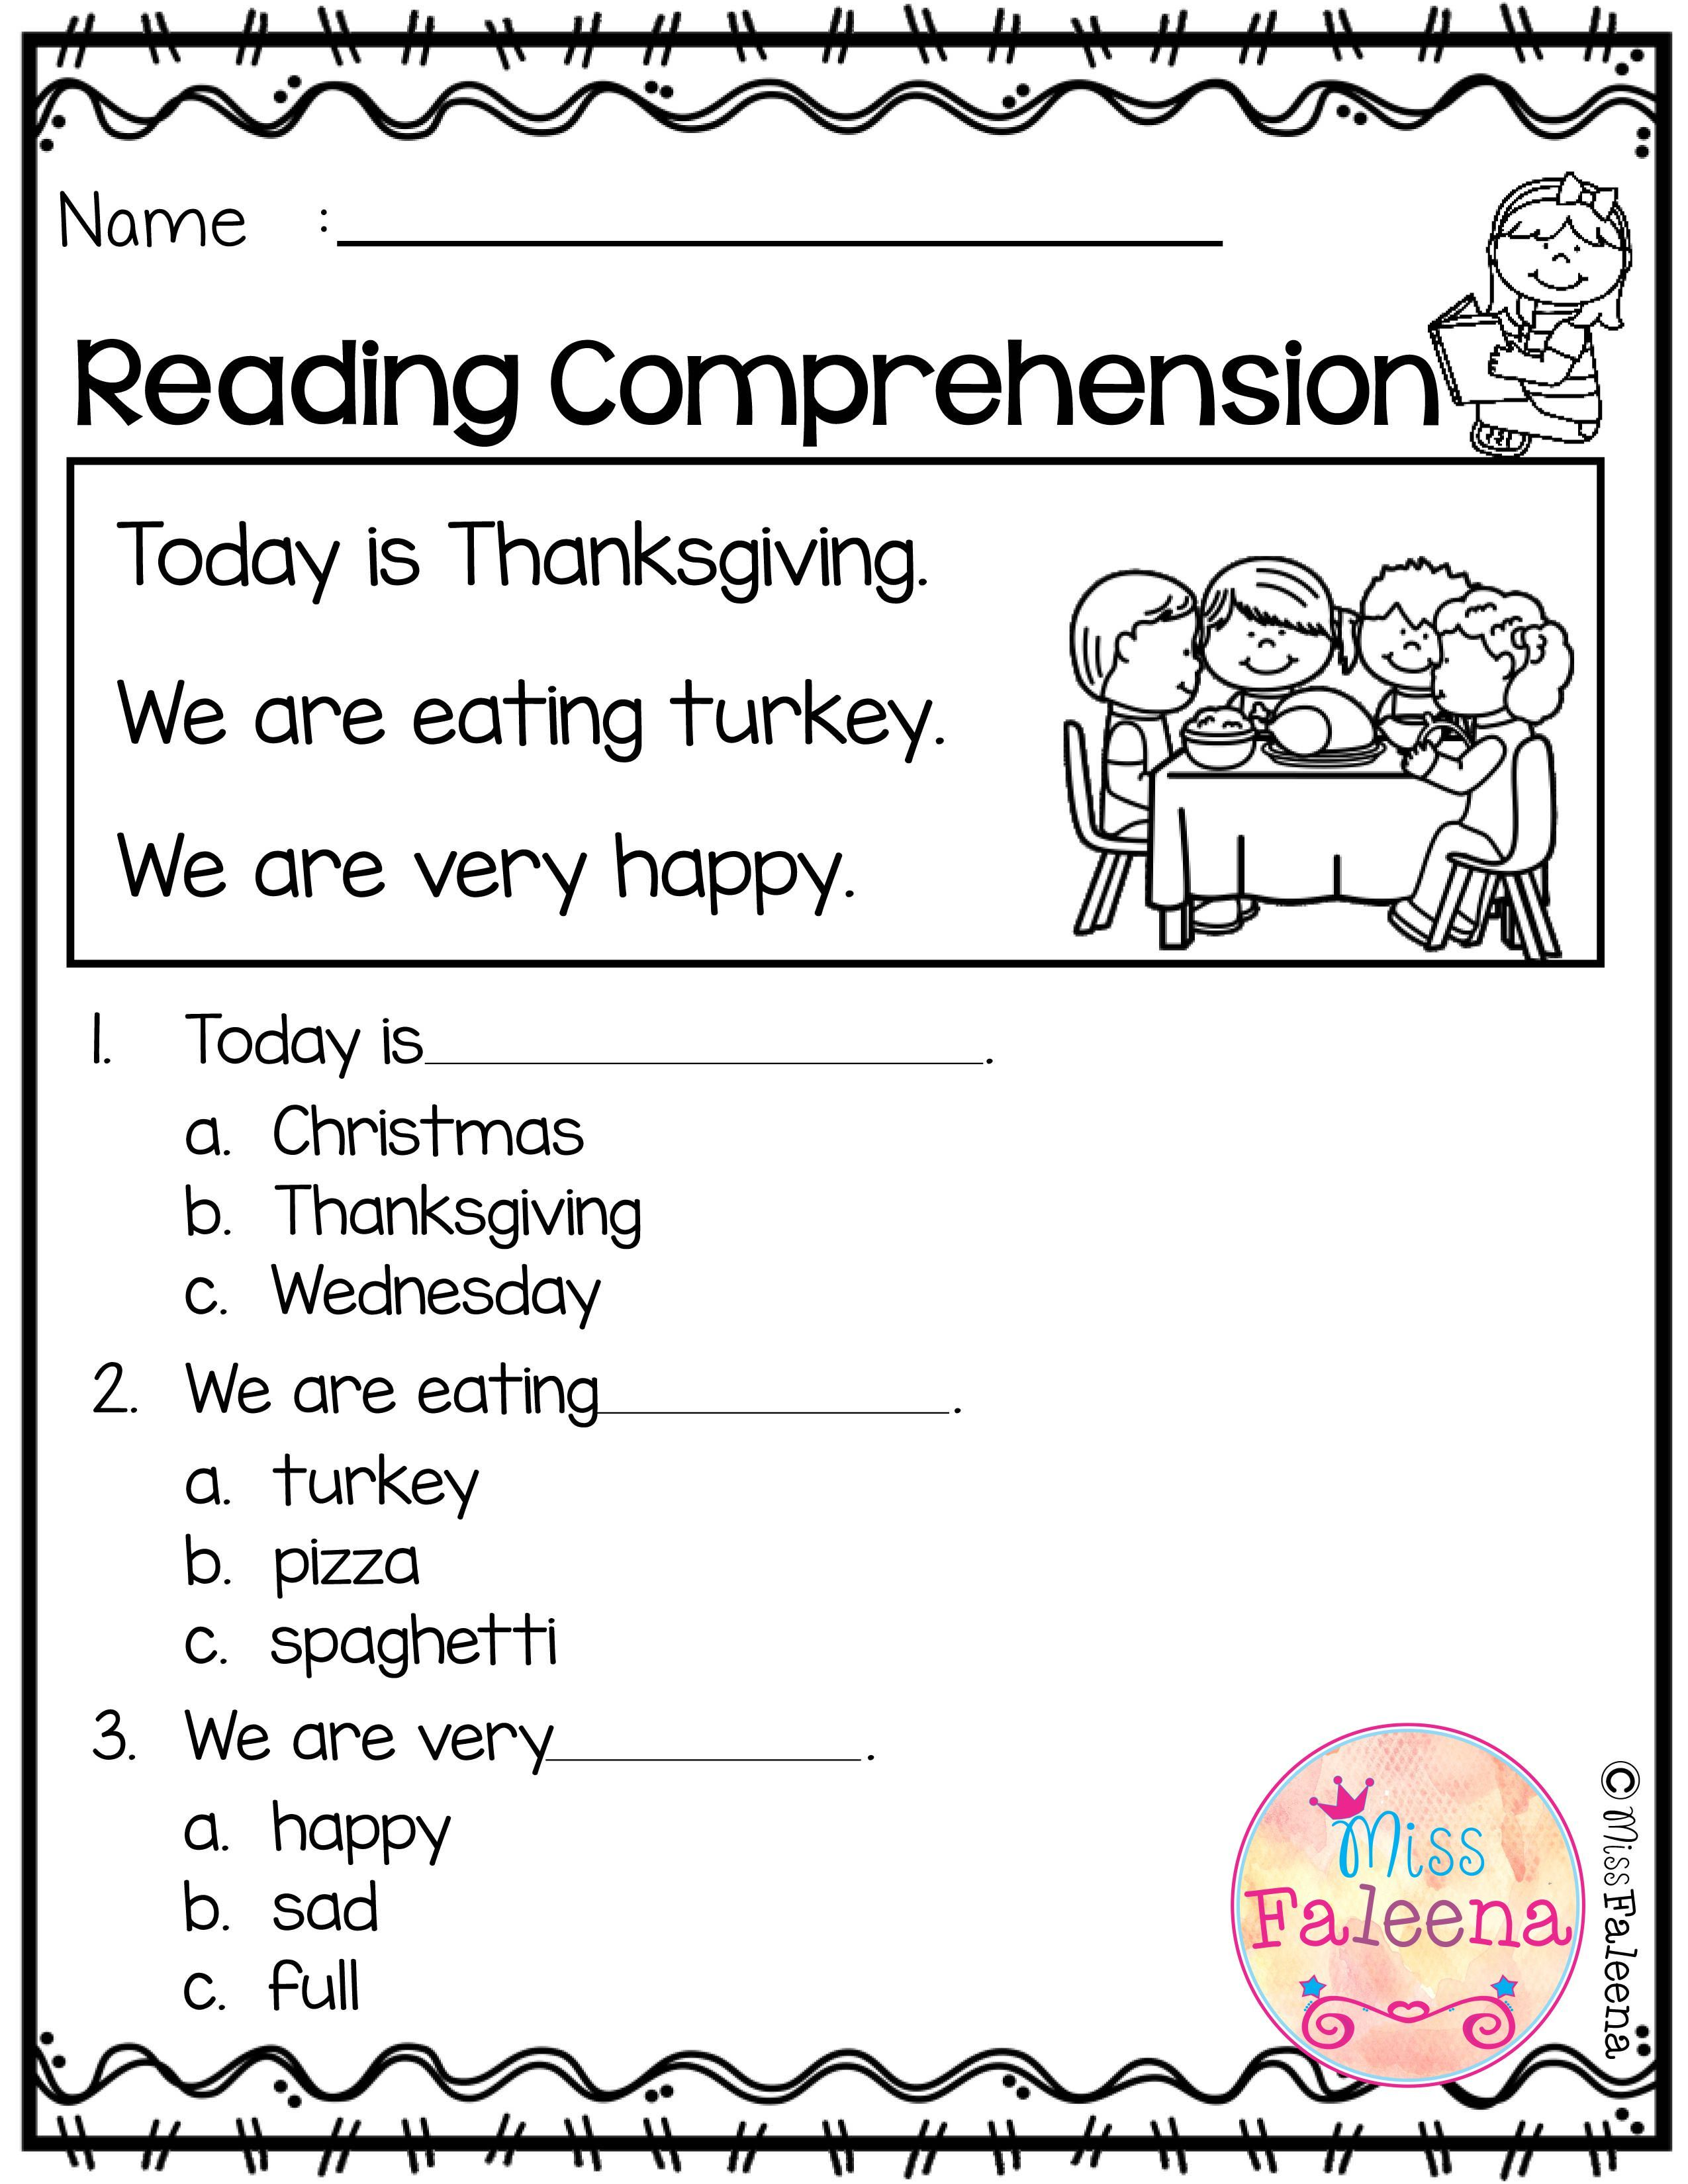 hight resolution of 4th Grade Reading Comprehension Worksheets Thanksgiving   Printable  Worksheets and Activities for Teachers